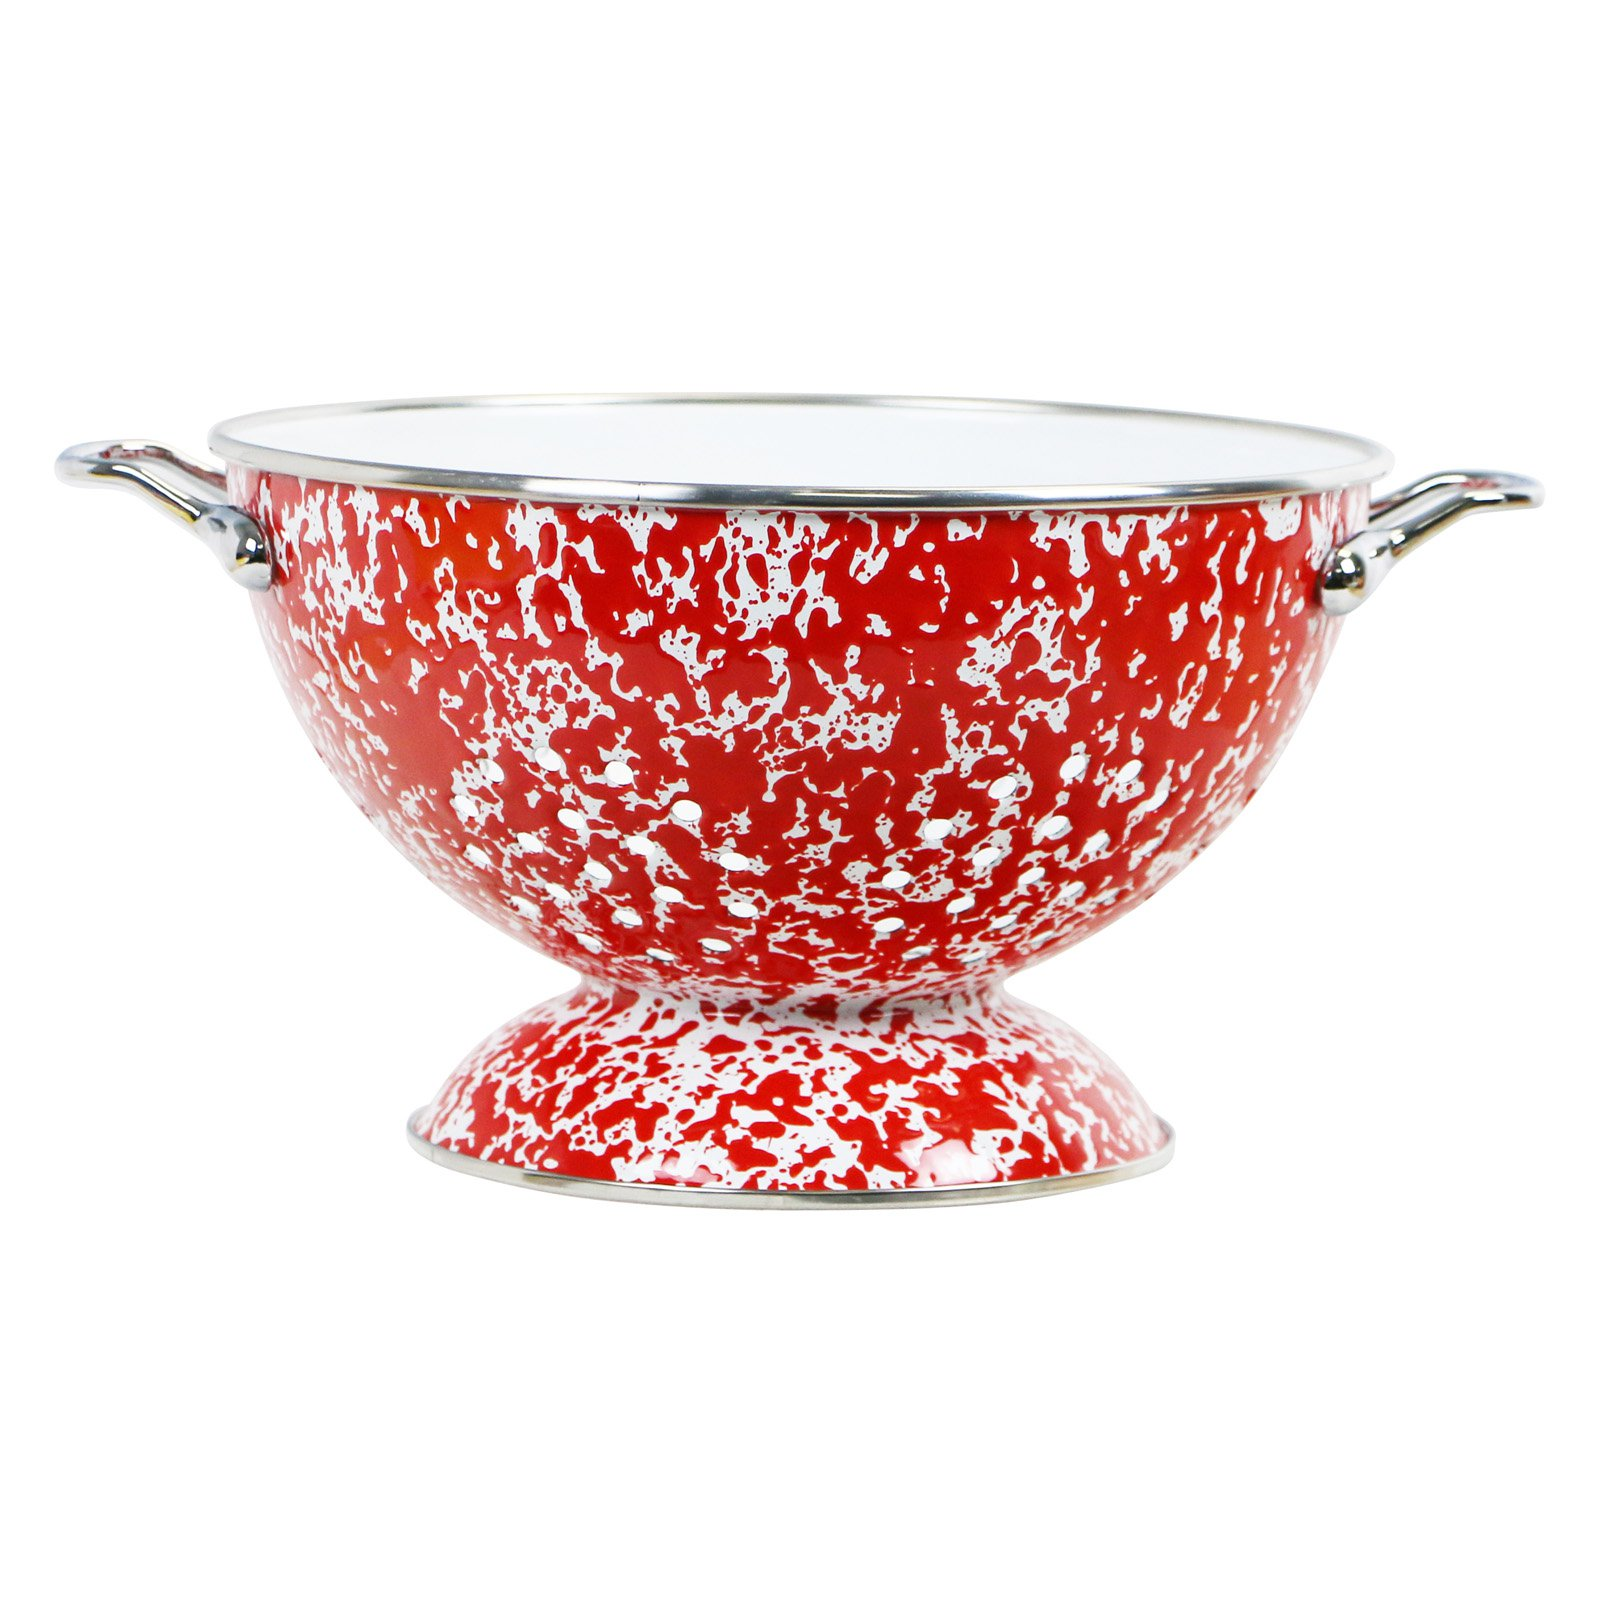 Calypso Basics, Enamel on Steel Marble Effect 3 Qt. Colander, Red Marble by Reston Lloyd